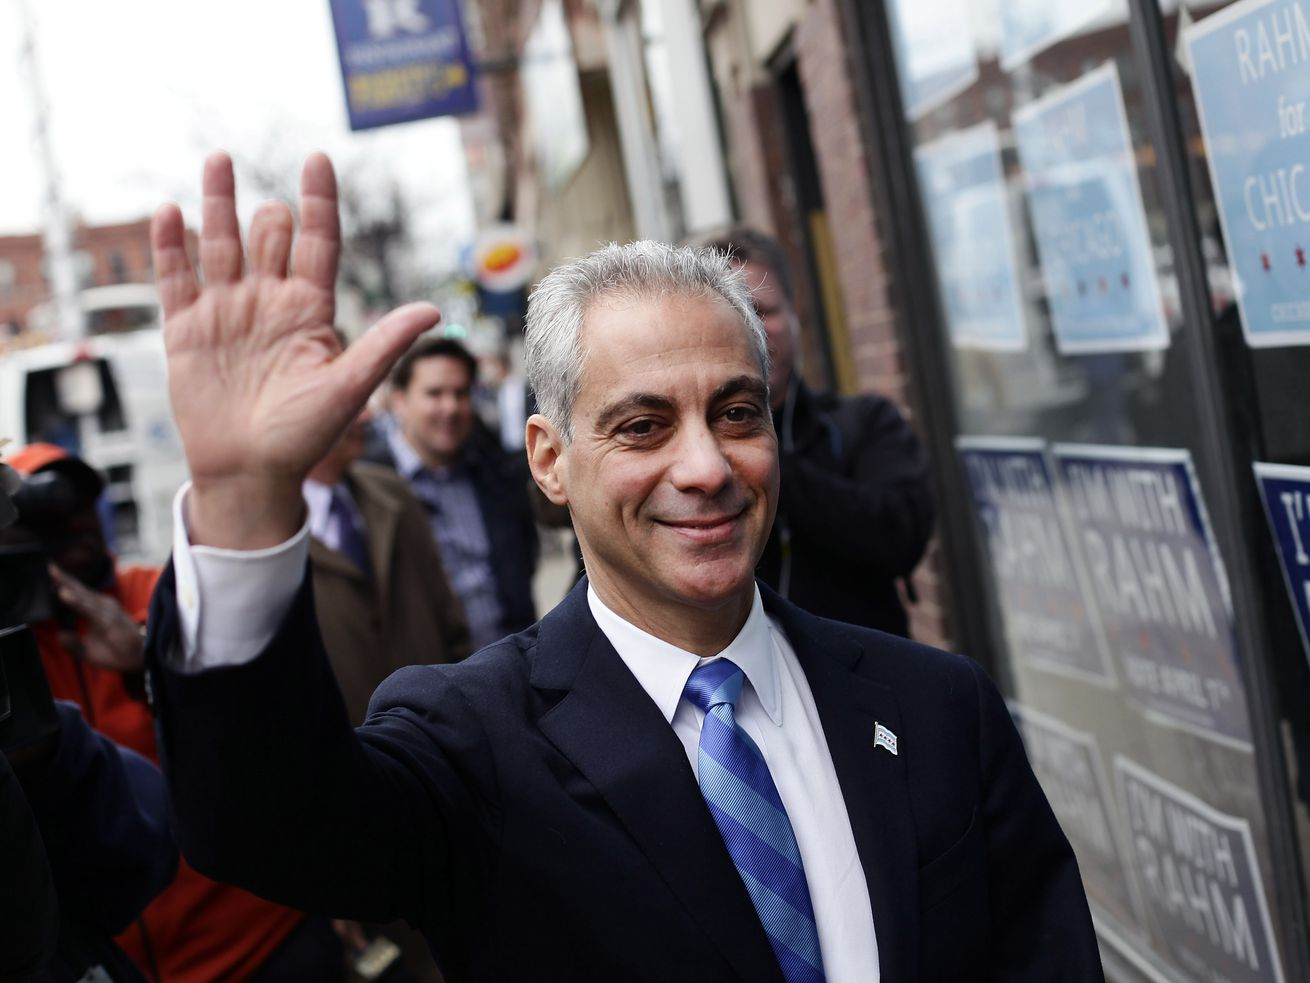 The outgoing mayor Rahm Emanuel.